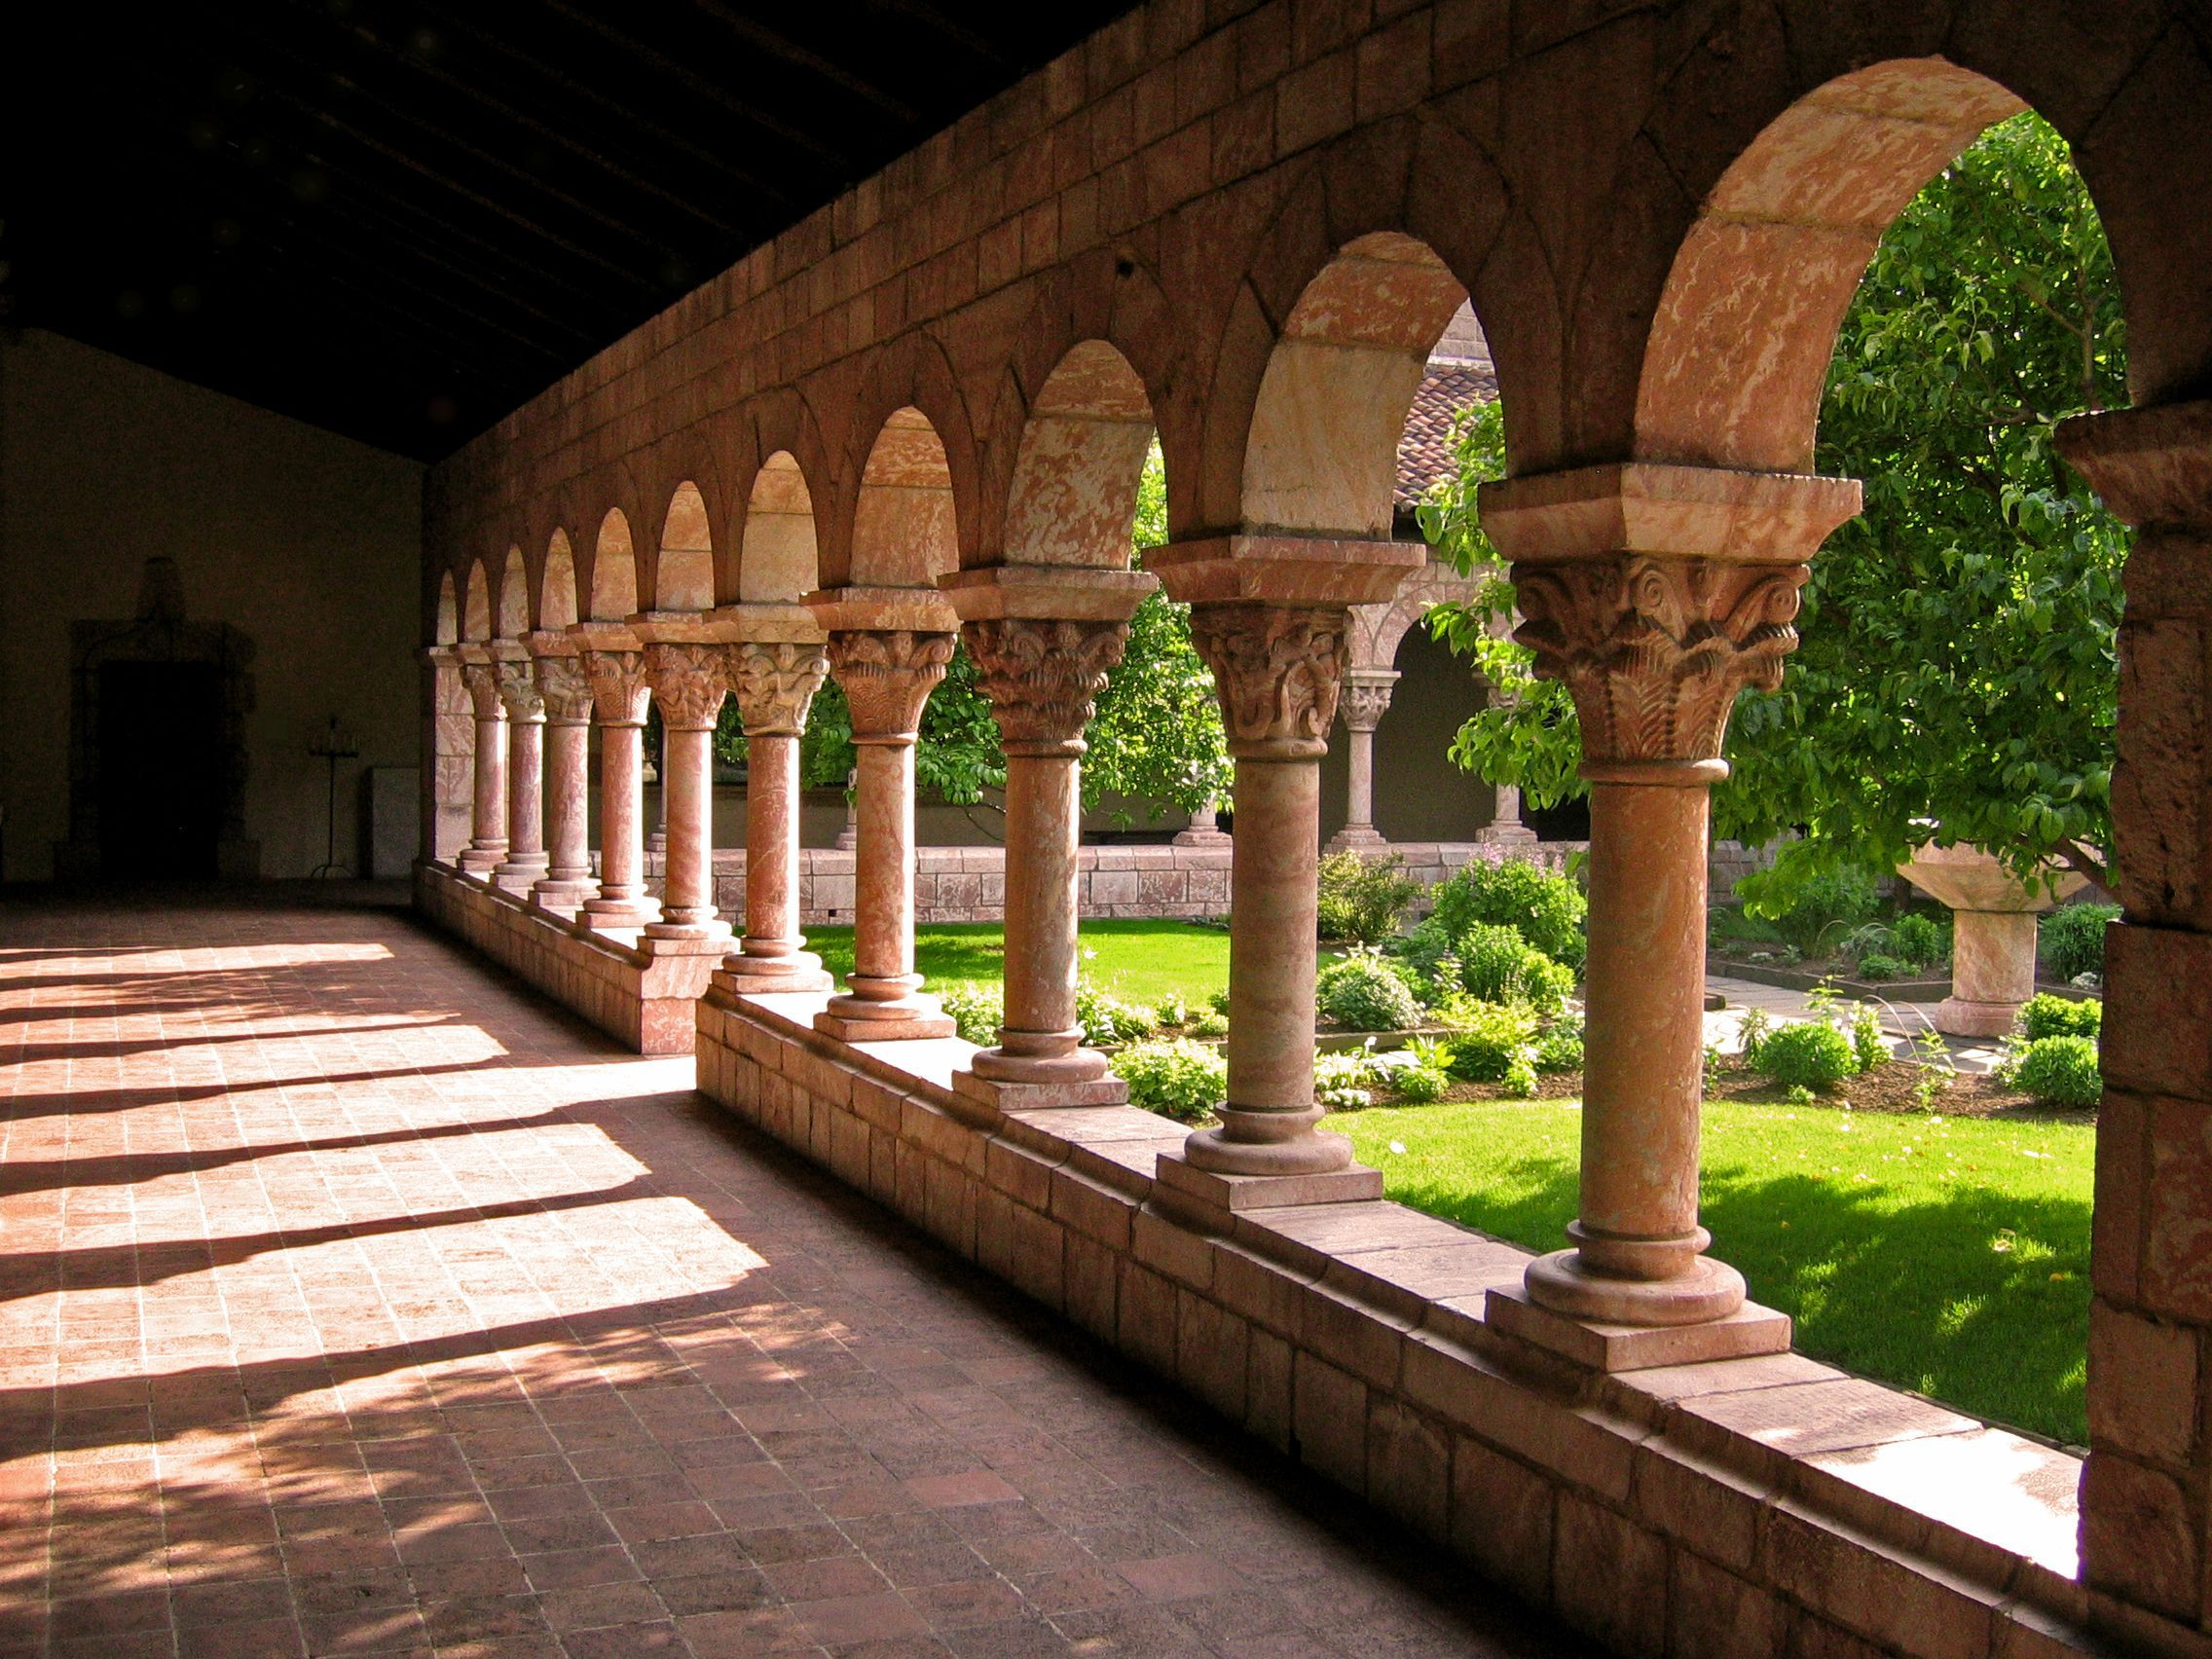 2598680 - the cloisters in new york city